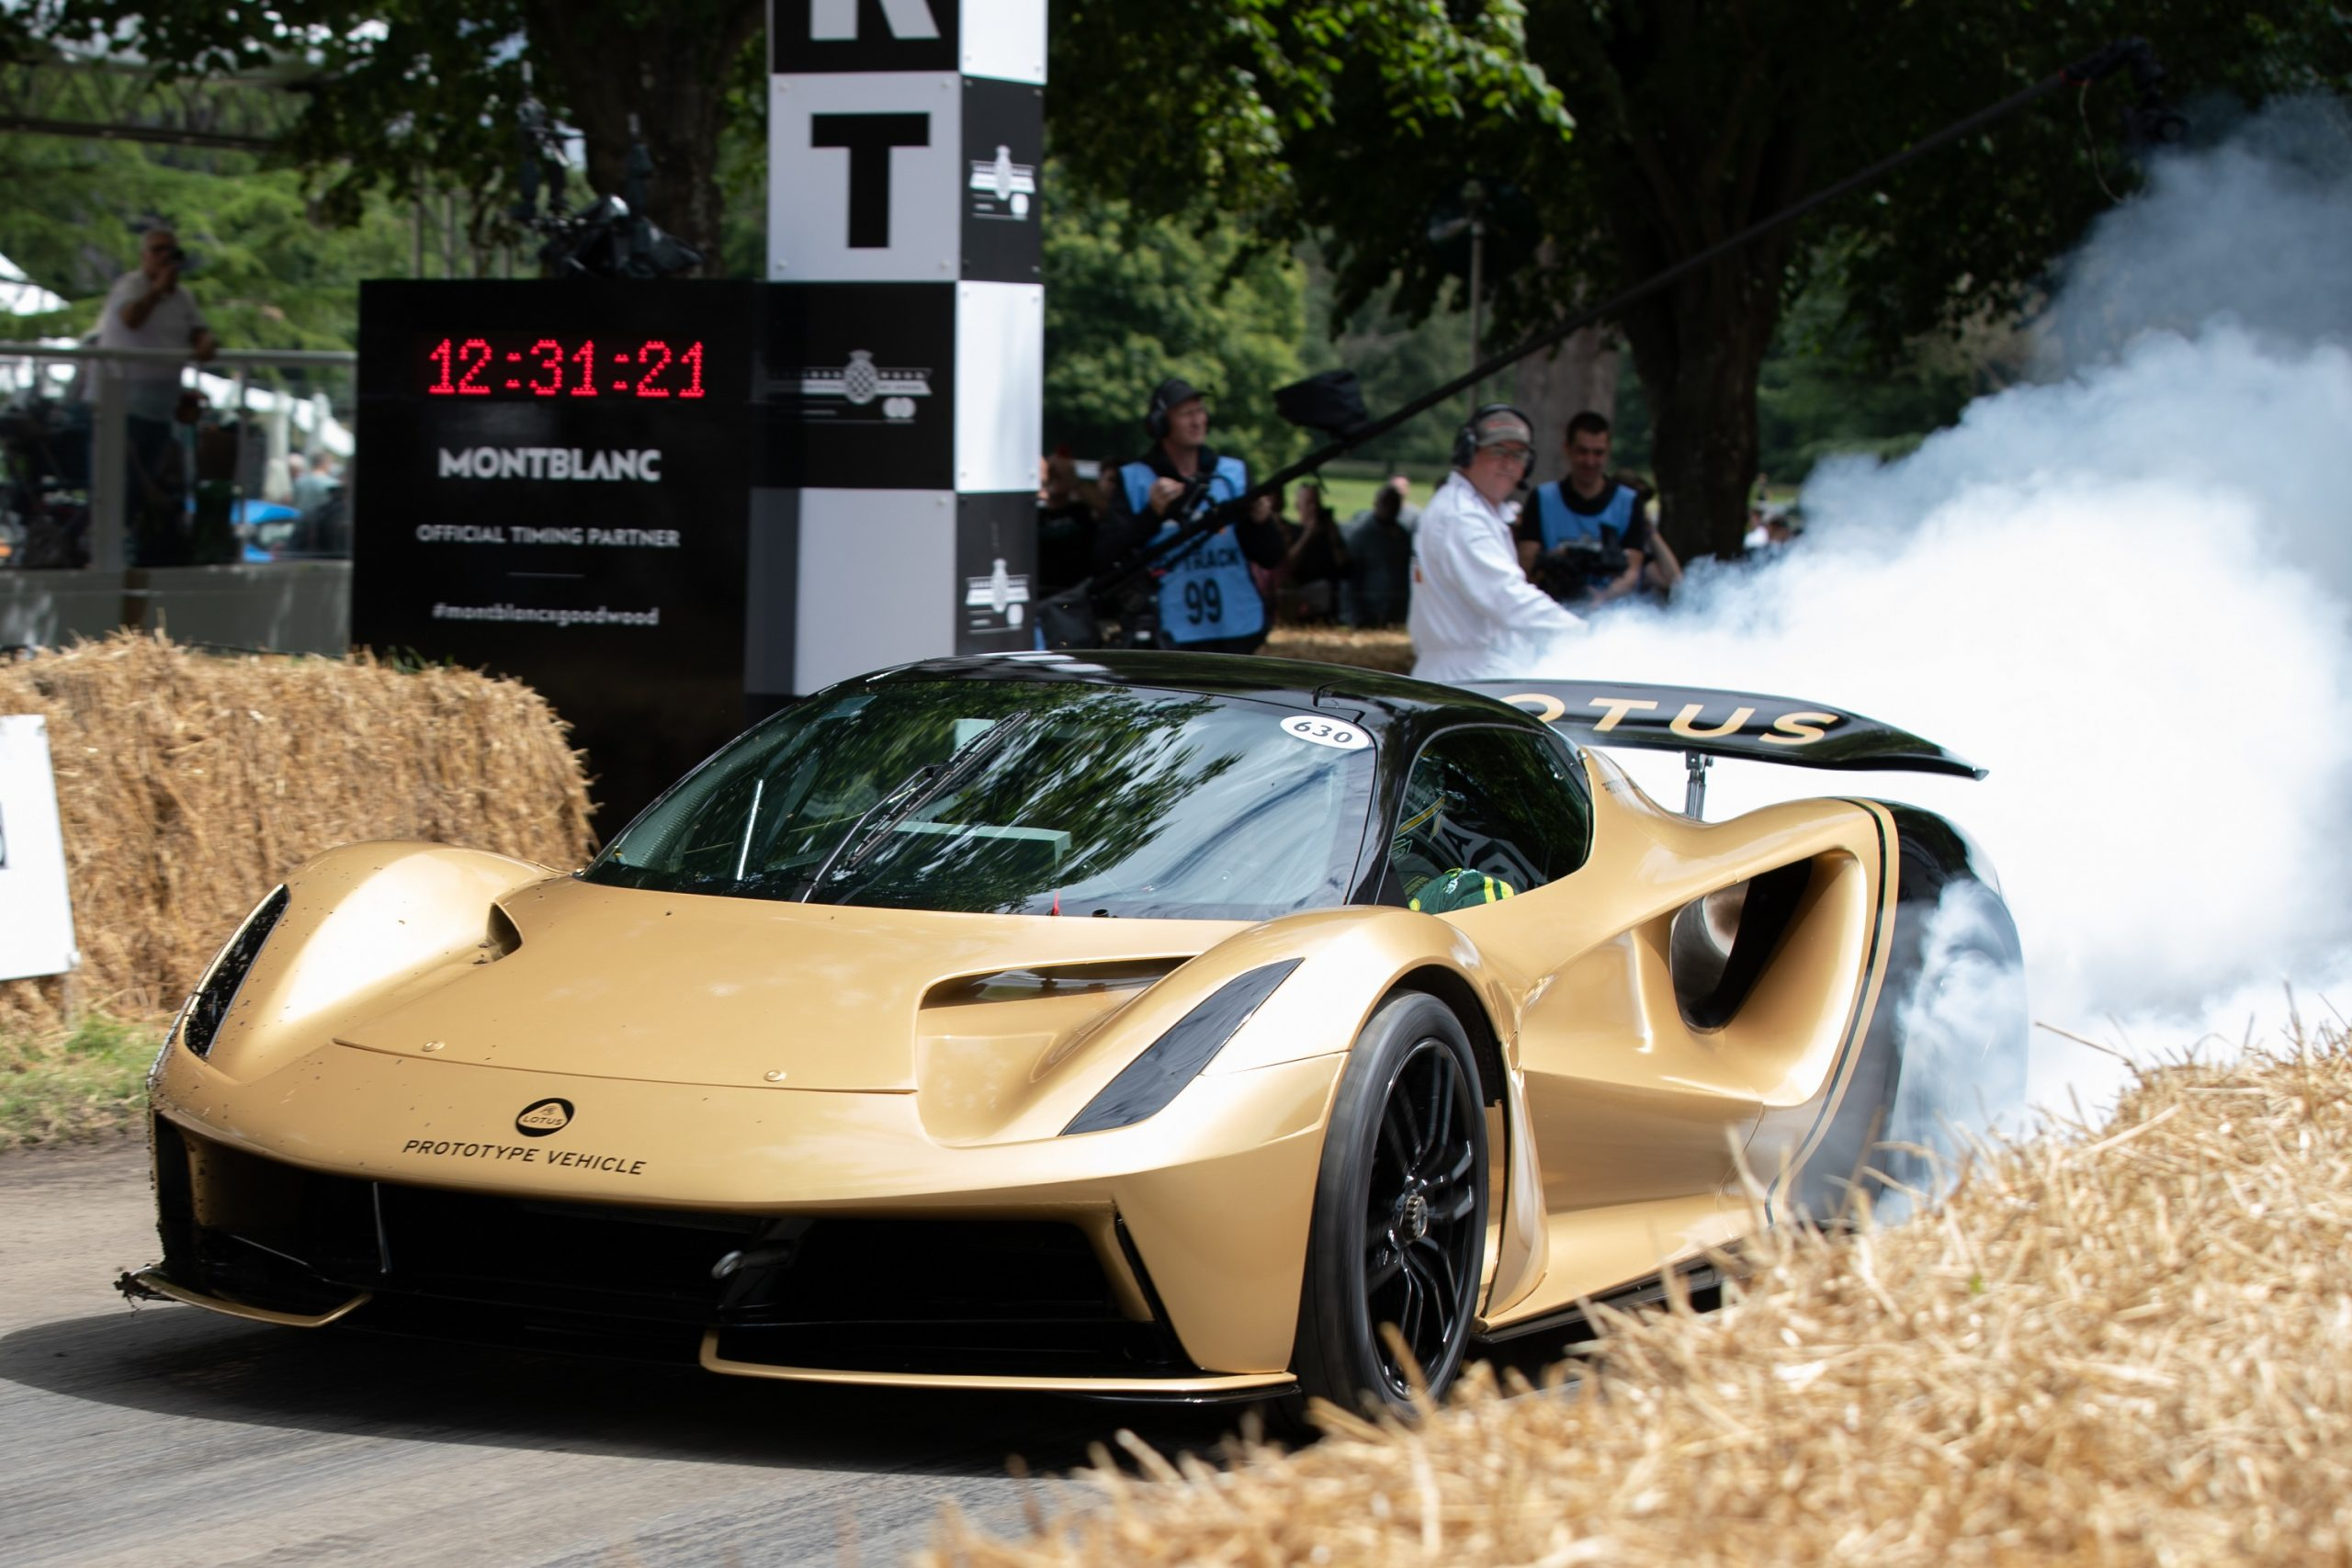 A gold Lotus Evija does a burnout at the start of its lap at the Goodwood Festival of Speed, shot from the front 3/4